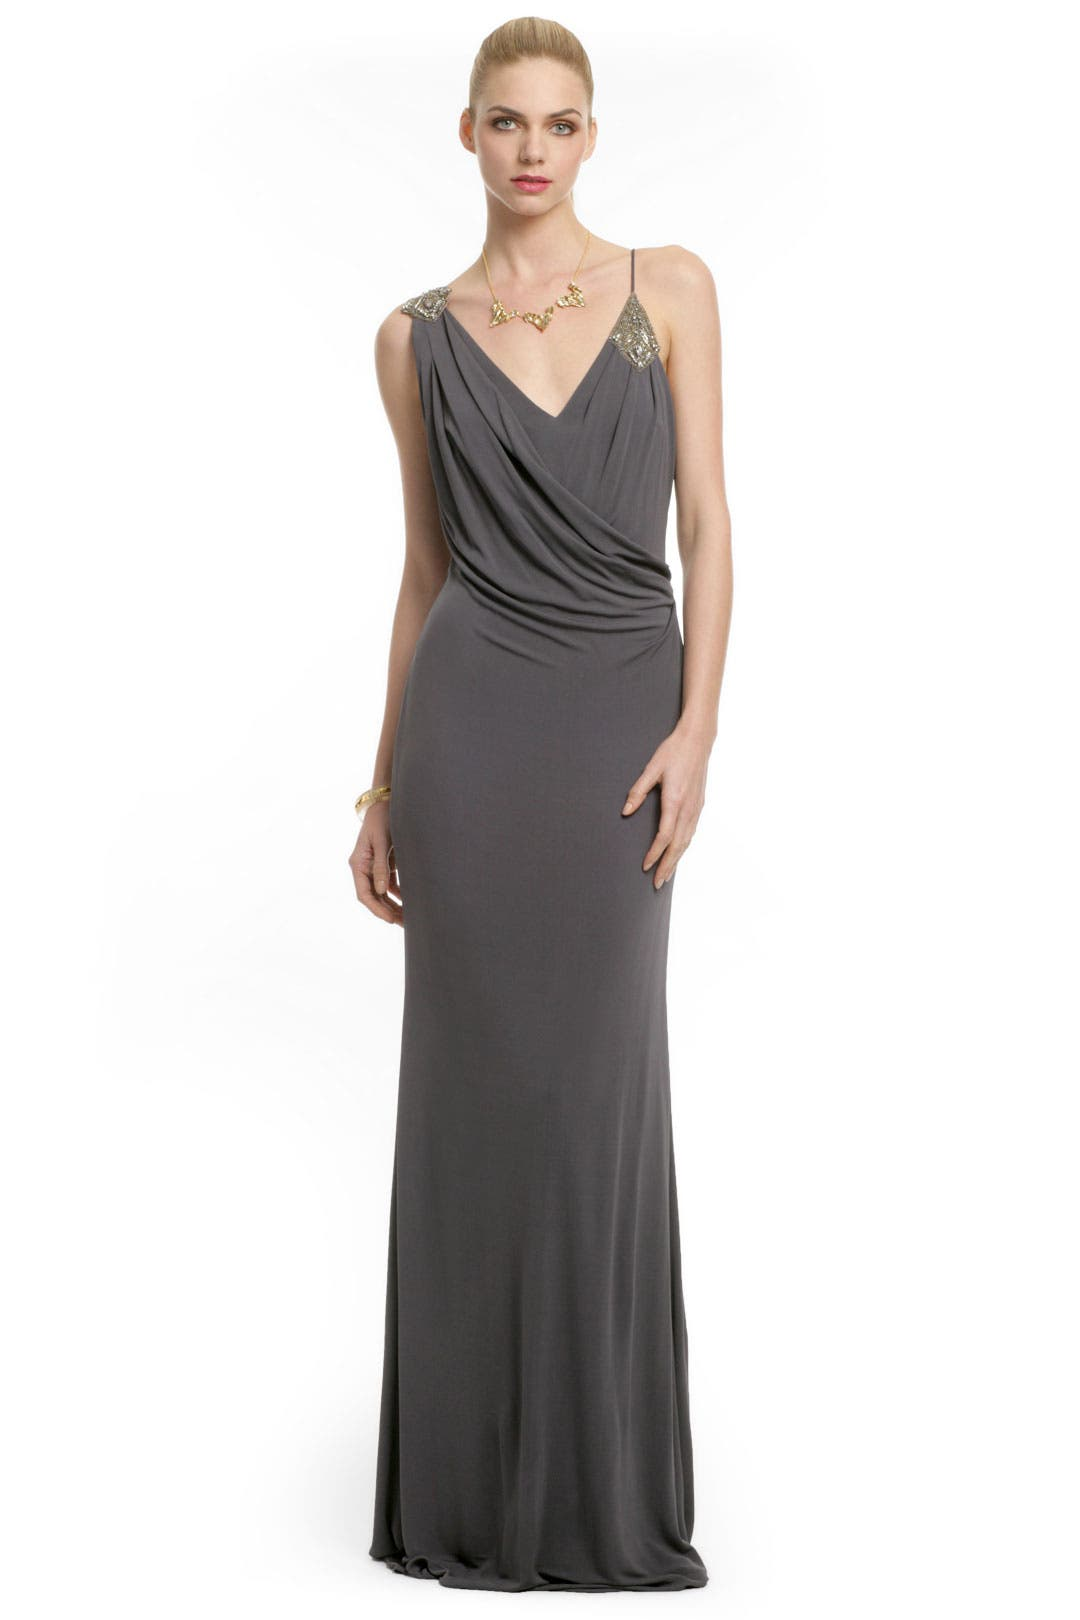 When In Rome Gown by Badgley Mischka